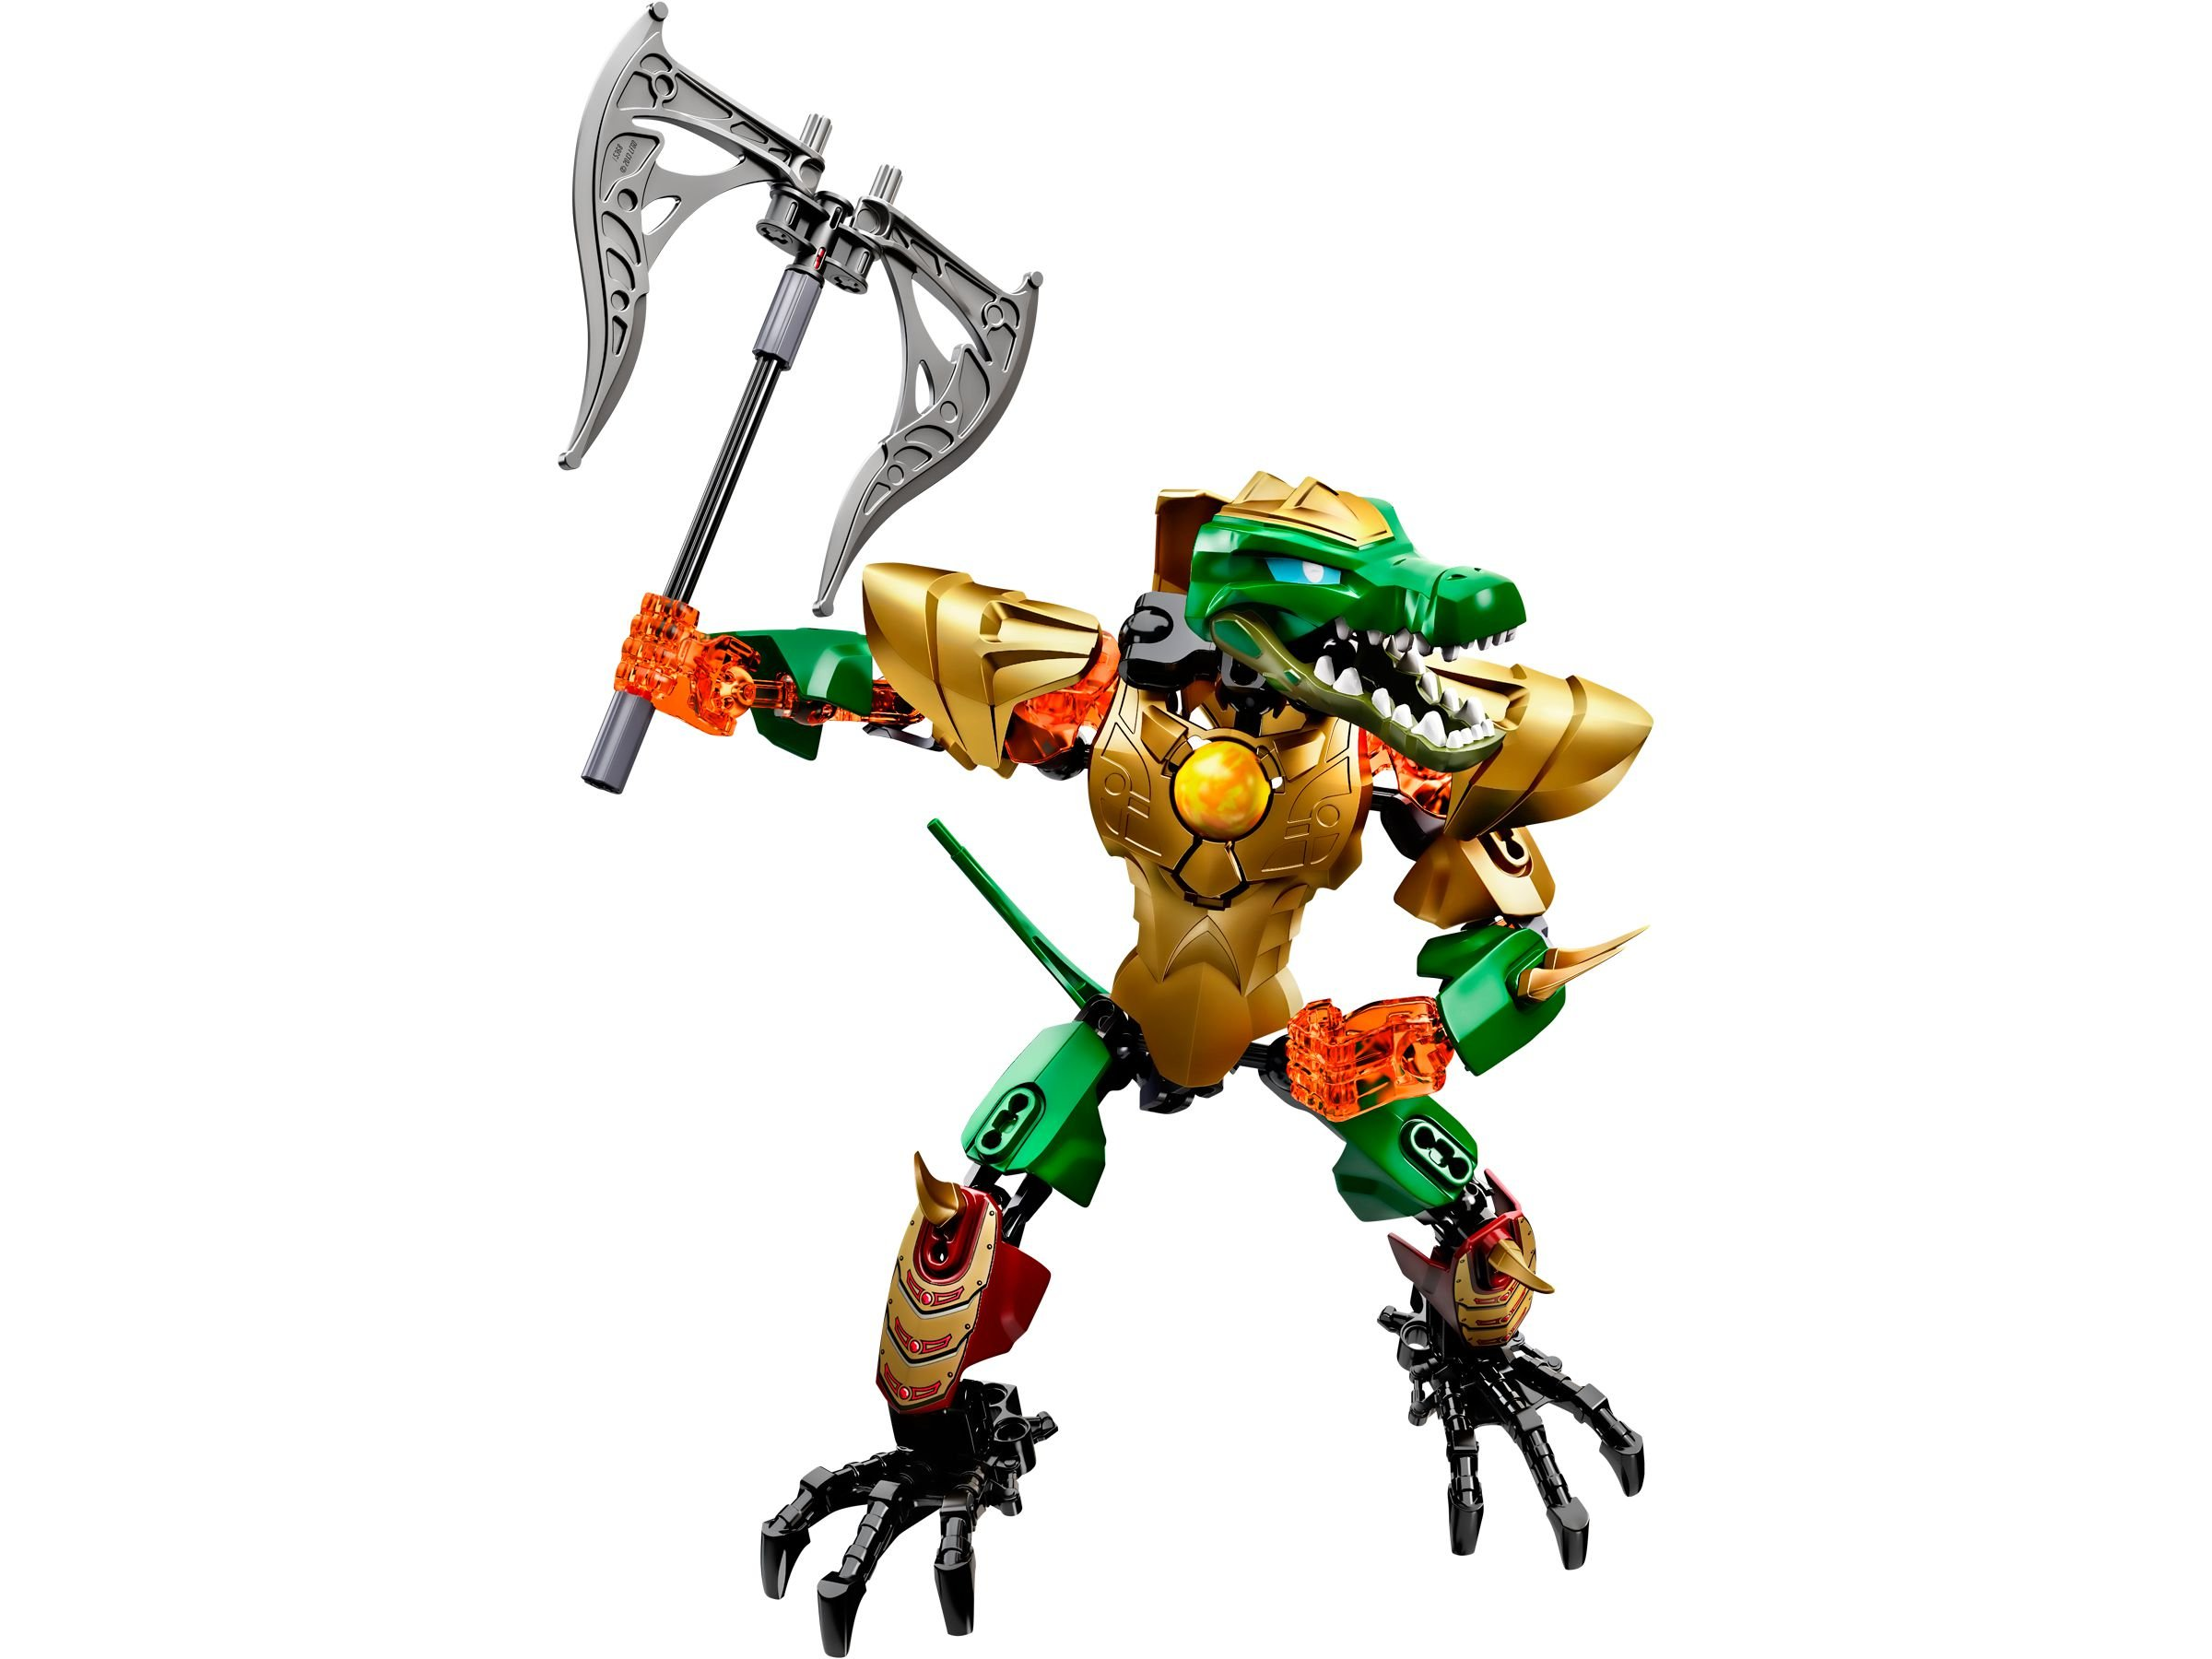 LEGO Legends Of Chima 70207 CHI Cragger LEGO_70207.jpg